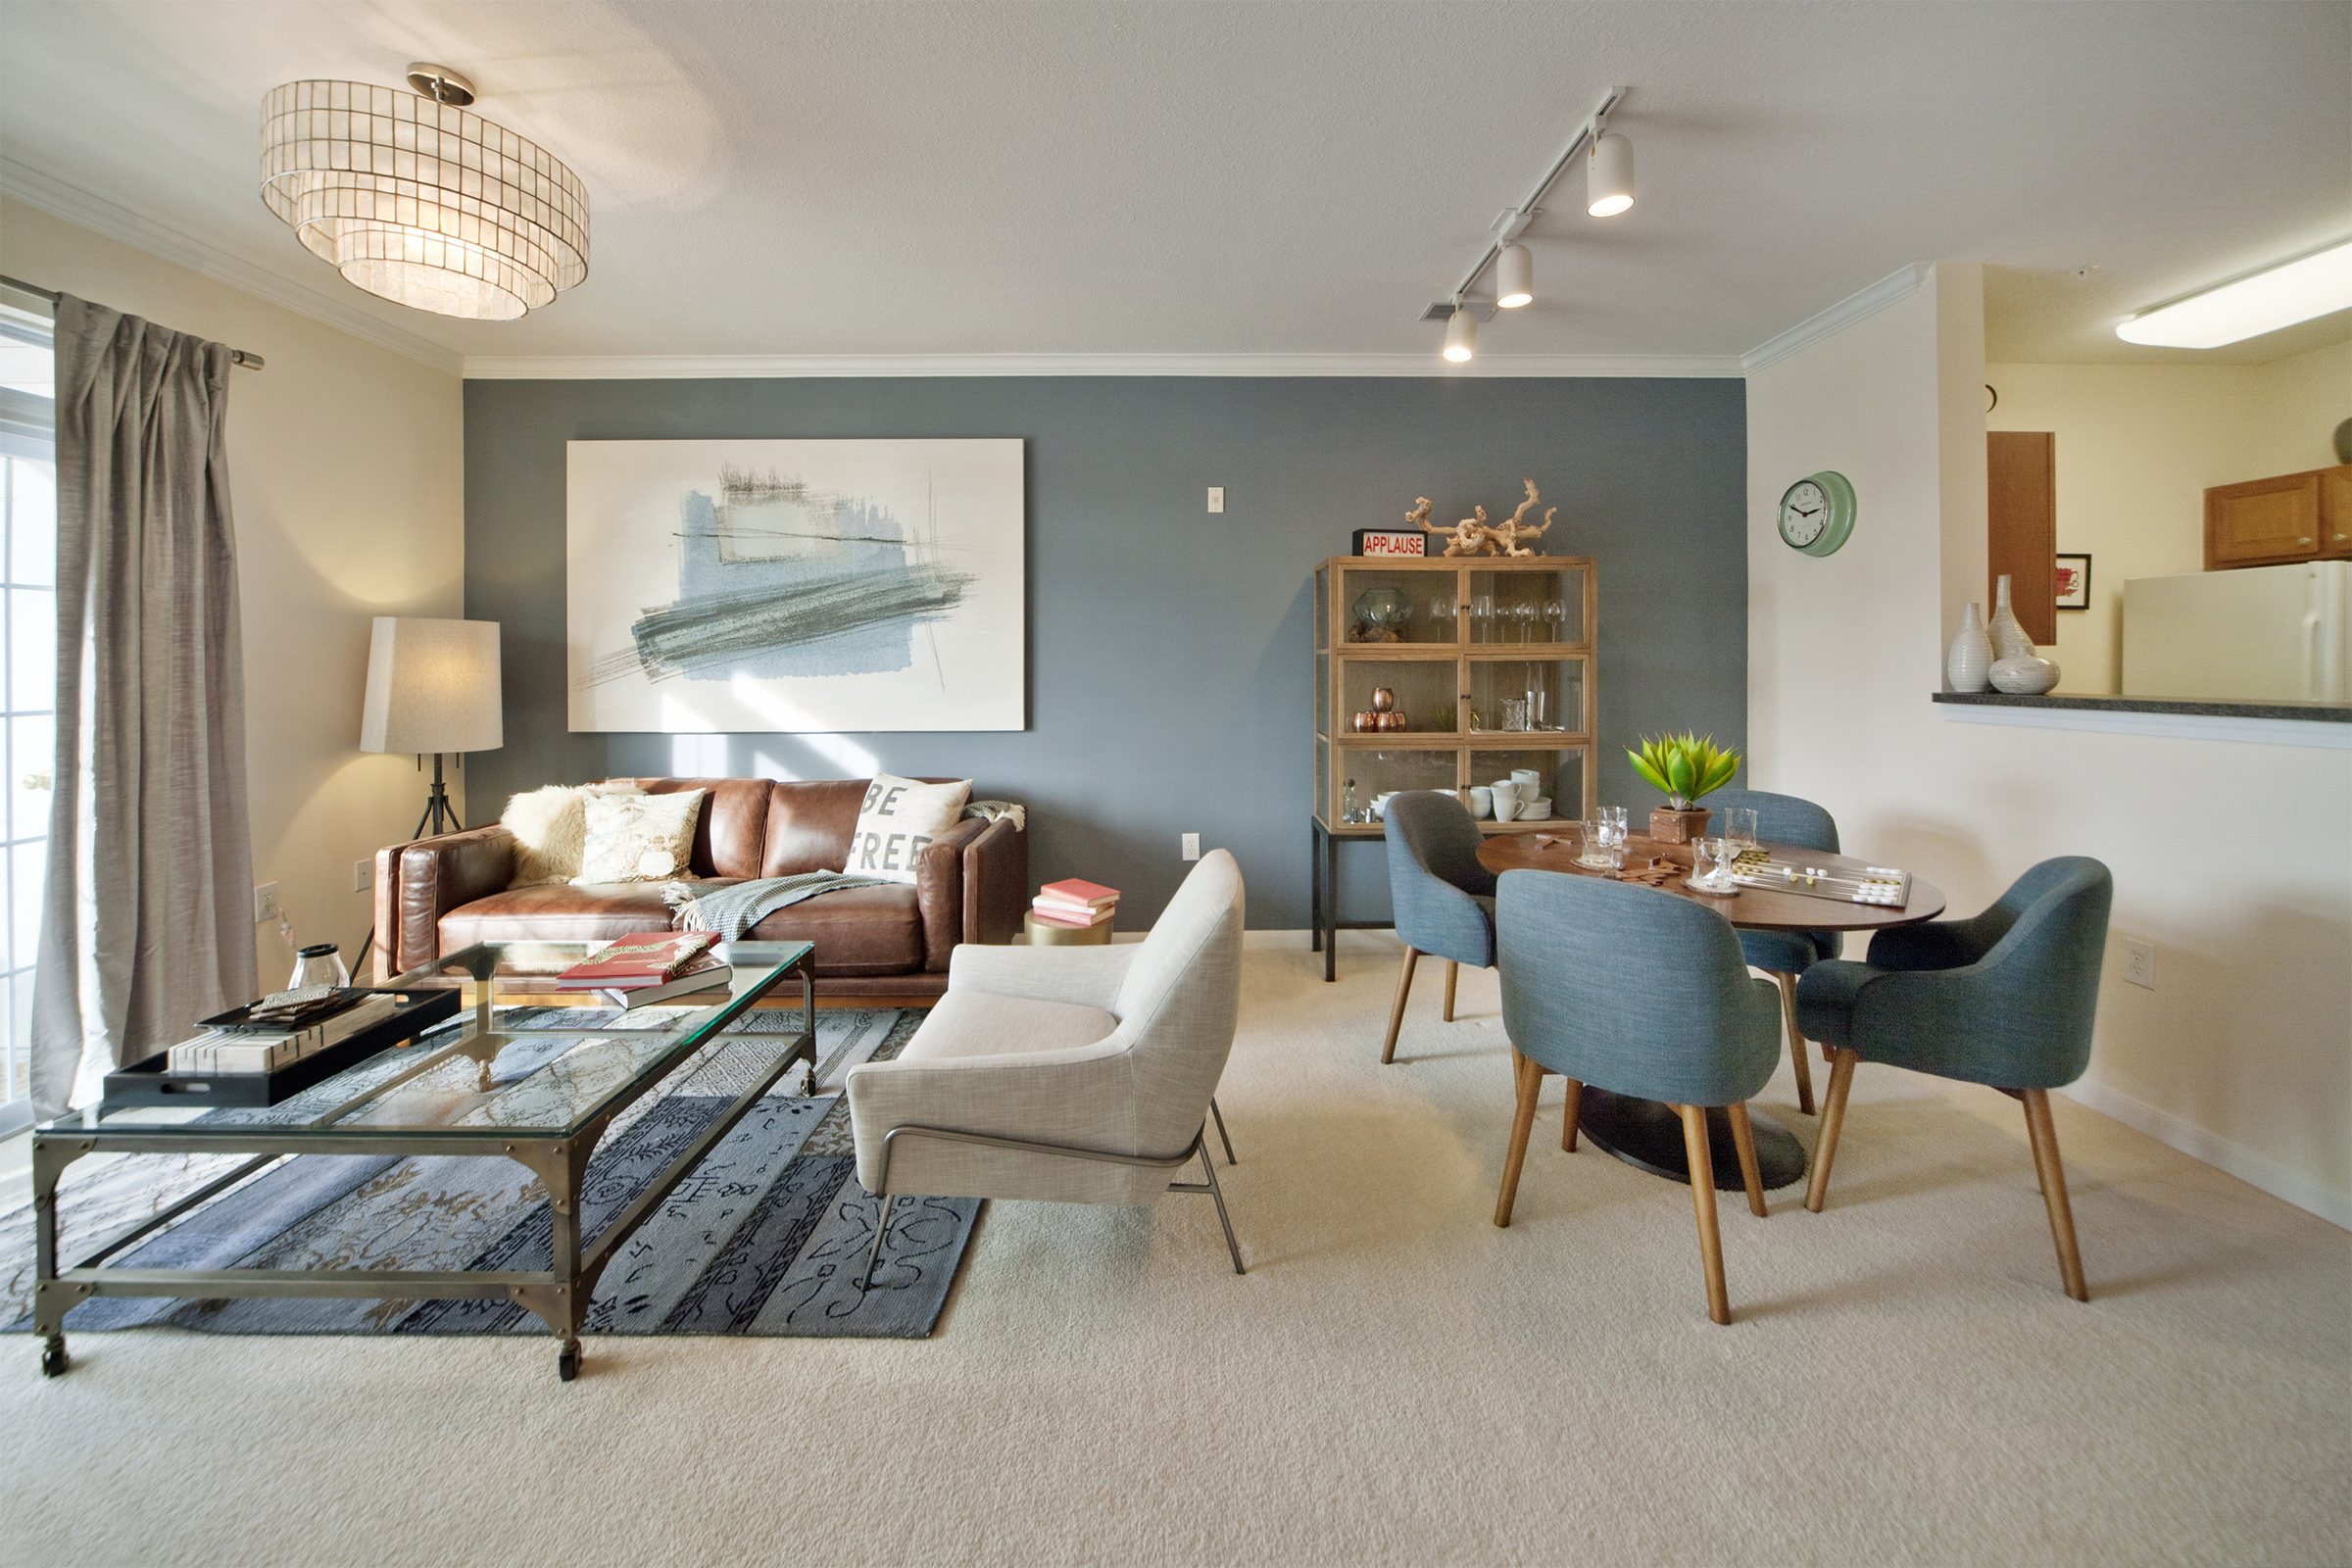 Interior living space featuring dining area and sofa seating area including luxury decor.